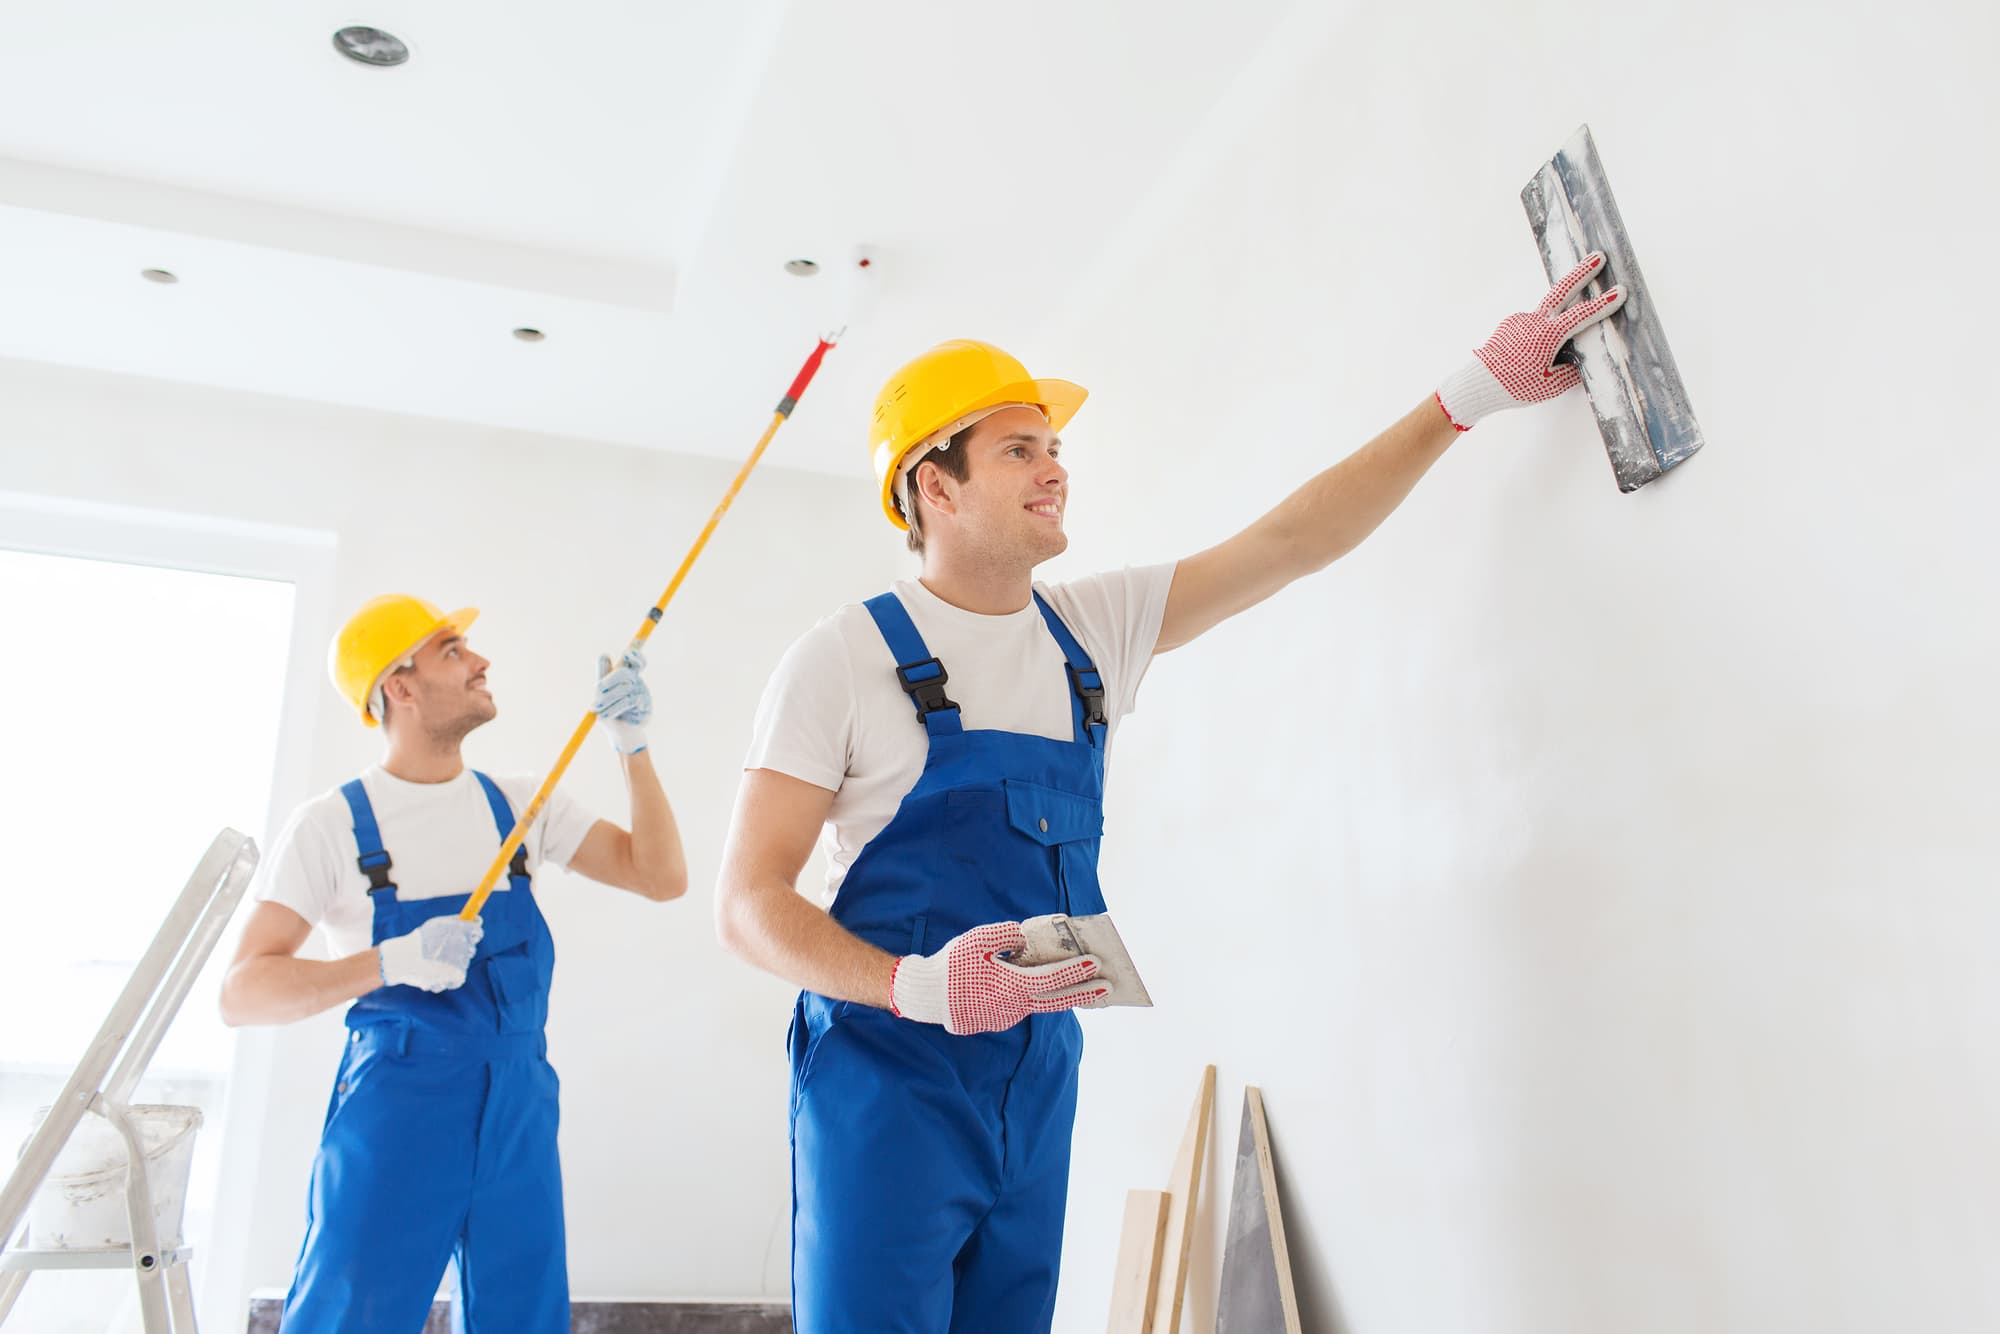 Professional Painters-San Marcos TX Professional Painting Contractors-We offer Residential & Commercial Painting, Interior Painting, Exterior Painting, Primer Painting, Industrial Painting, Professional Painters, Institutional Painters, and more.